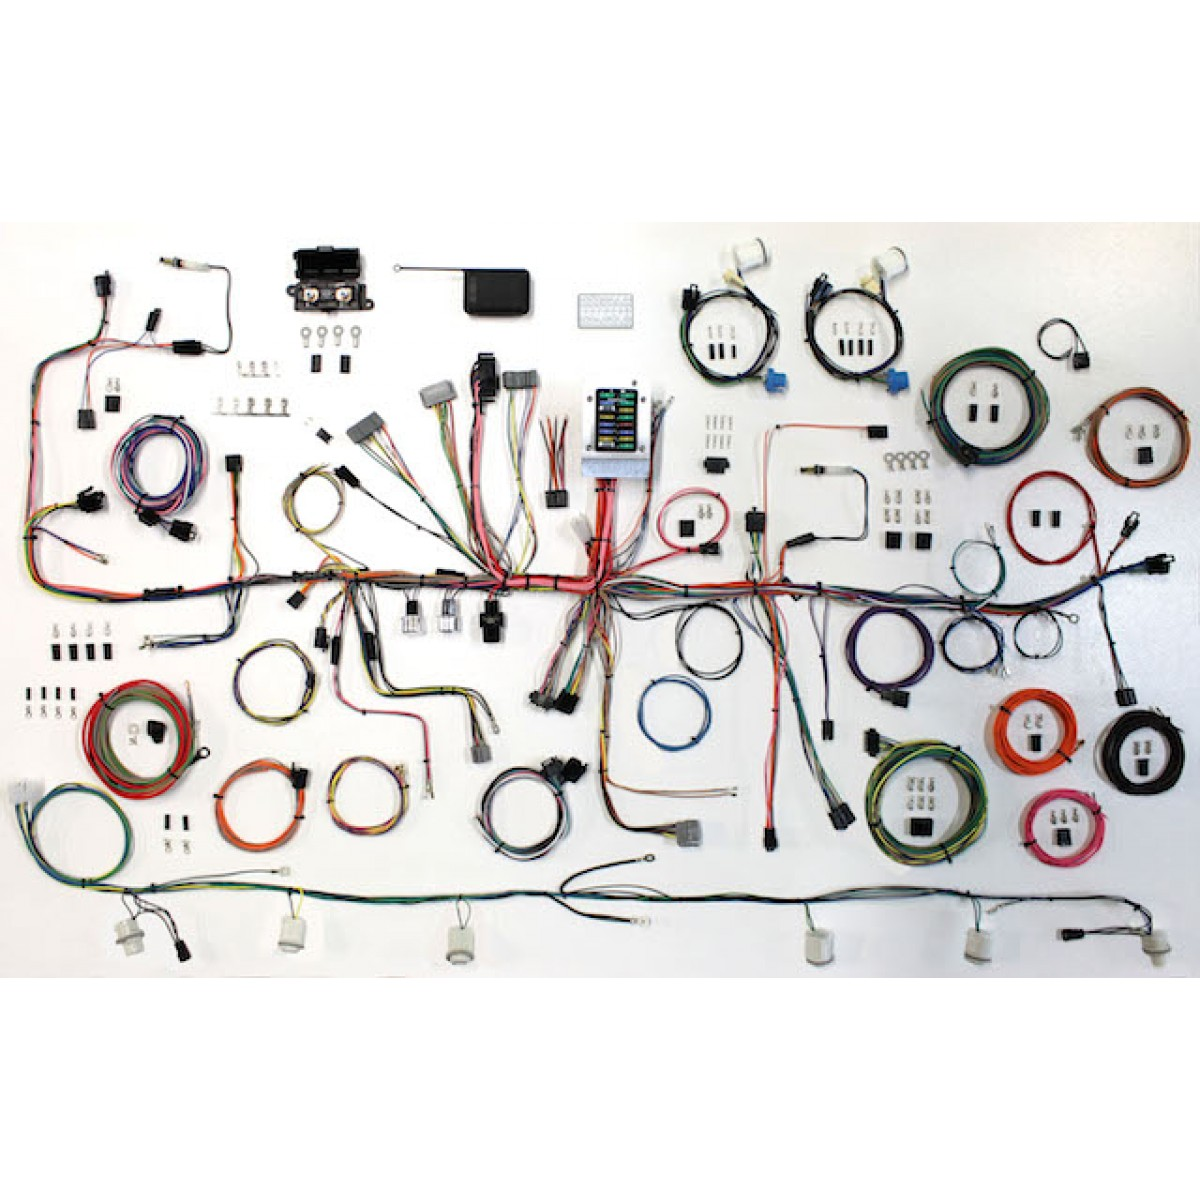 hight resolution of 1998 mustang wiring harness diagram